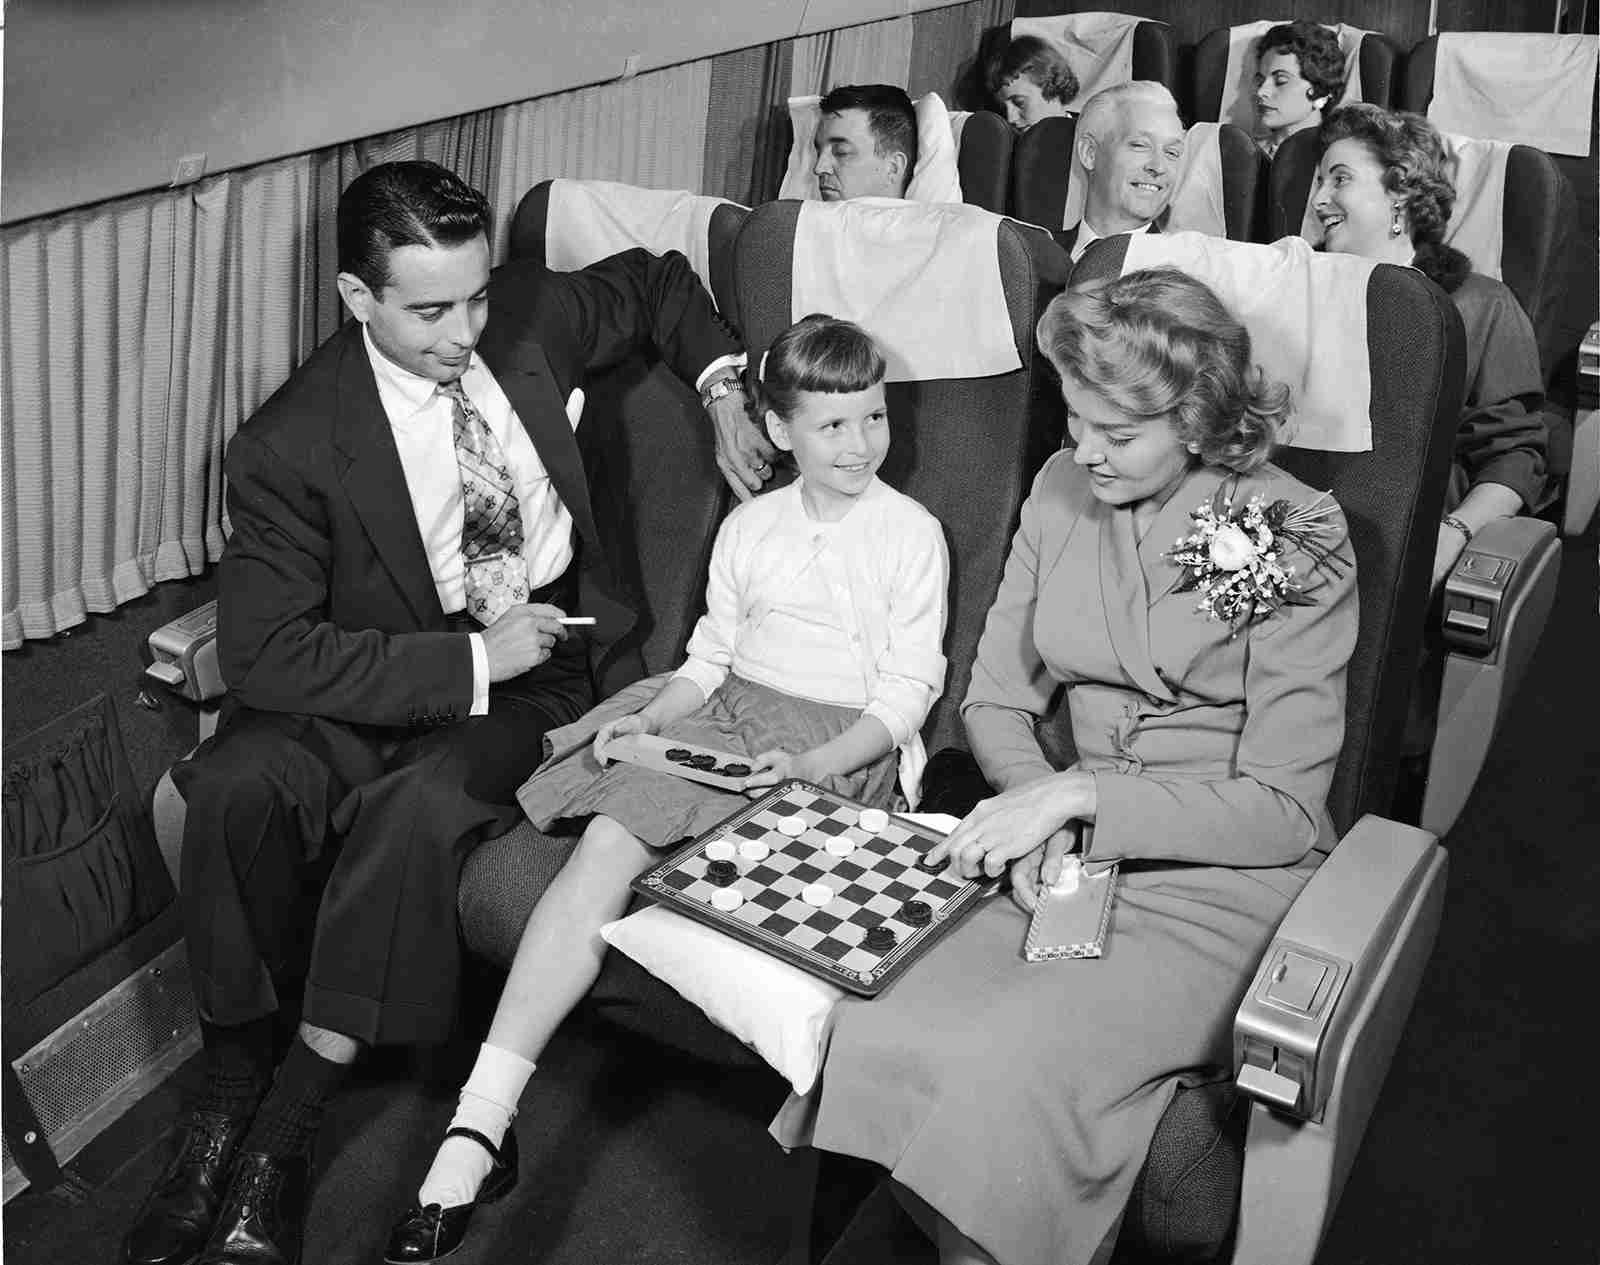 In the 1950s, smoking on board was perfectly normal even right next to children (Photo by Frederic Lewis/Getty Images)